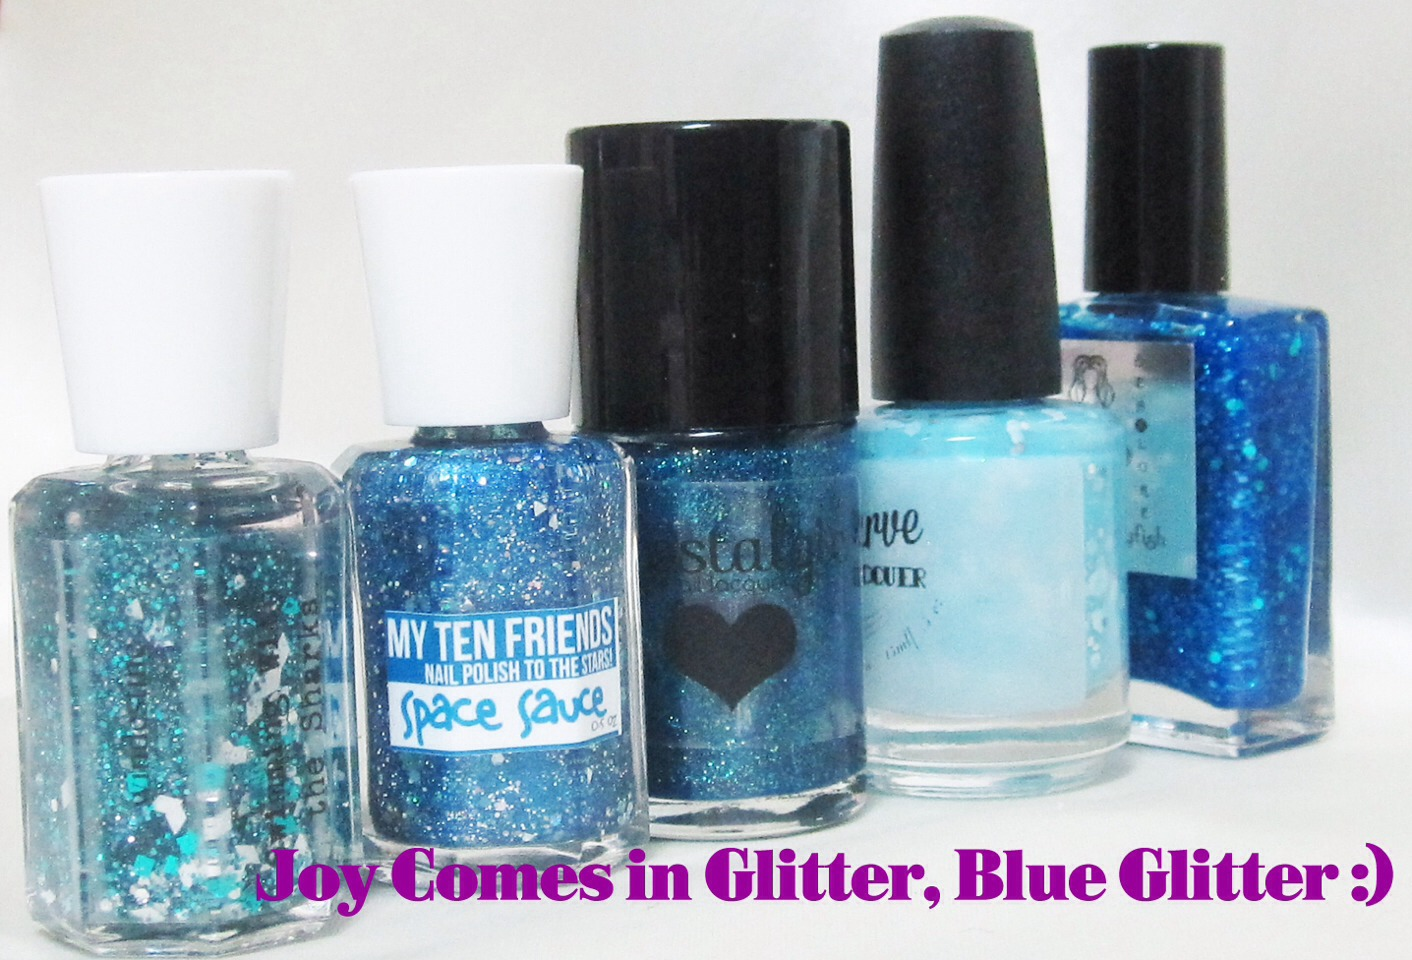 Then get any blue nail polish and dip the sponge in it. Then blot the blue sponge on your nails!